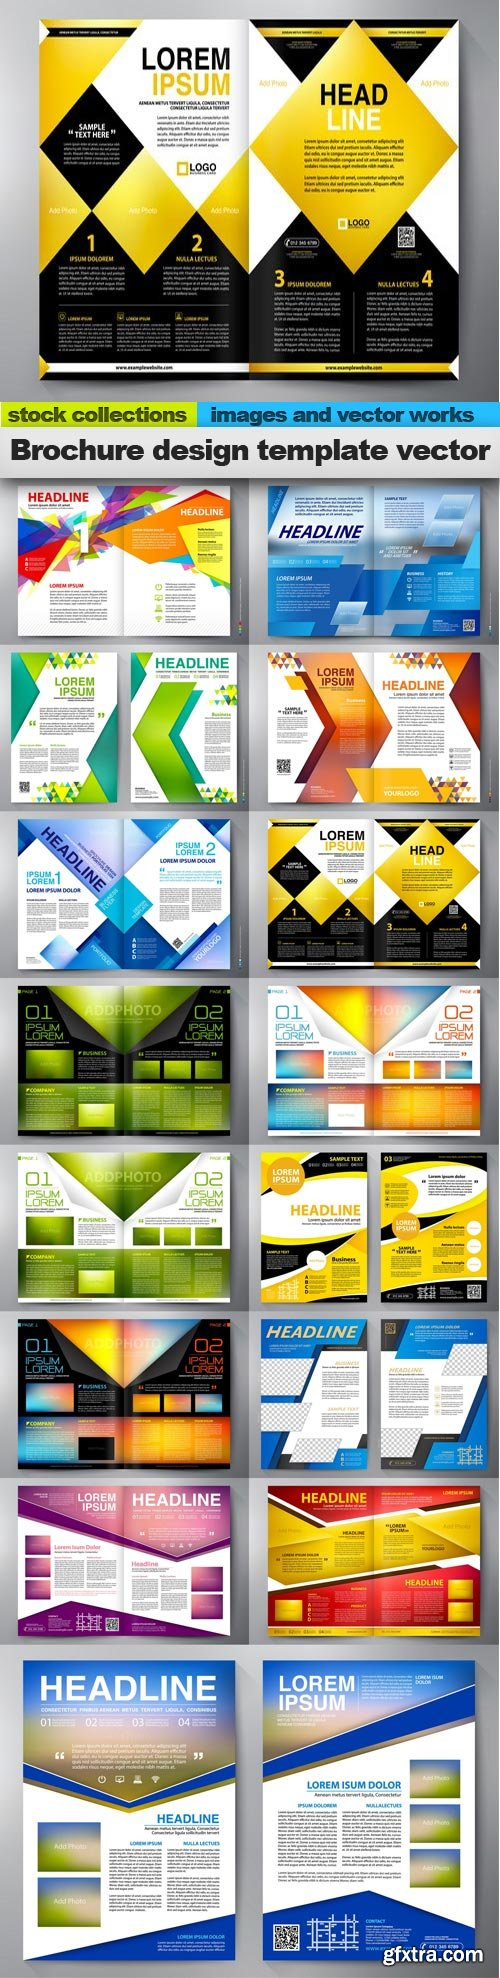 Brochure design template vector, 15 x EPS